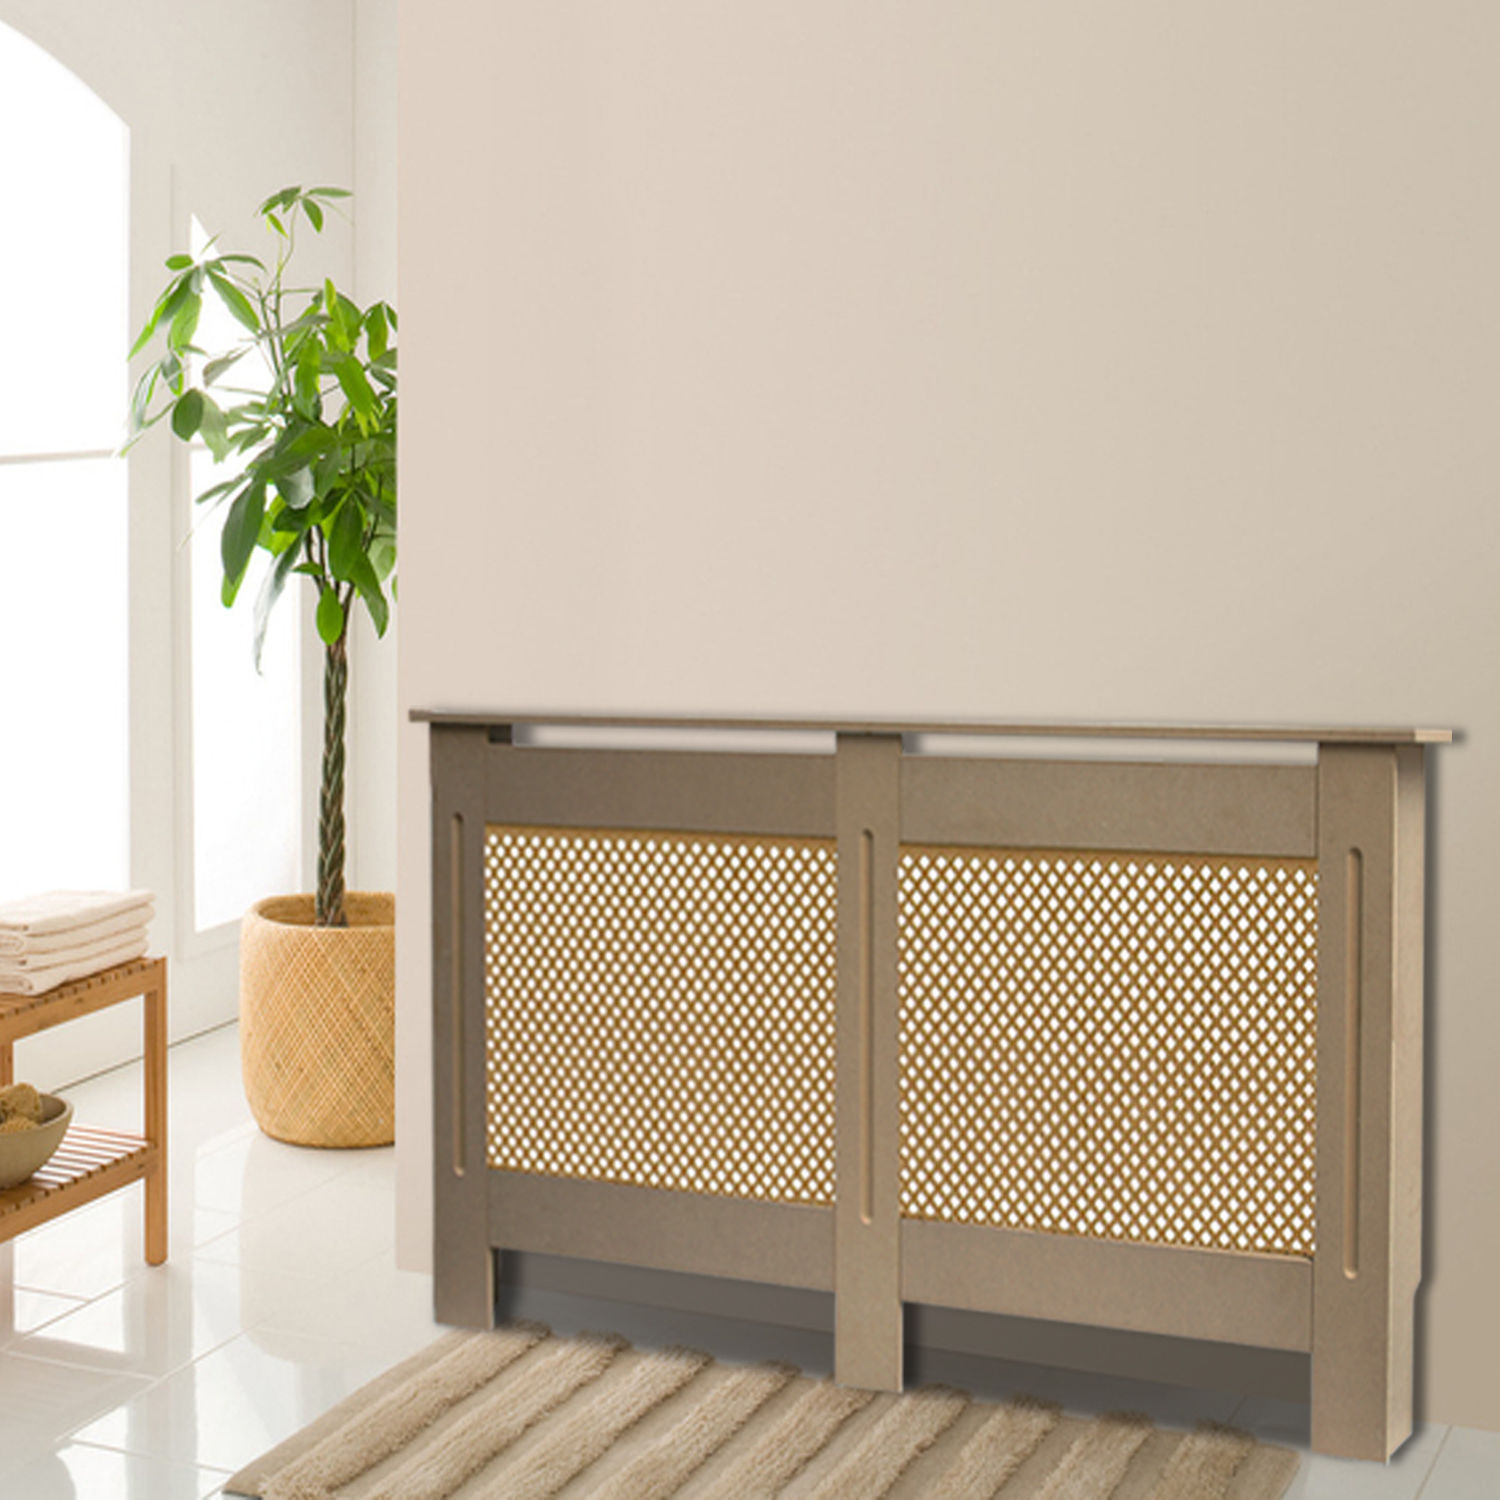 Large Unpainted Radiator Cover Modern Mdf Wood Radiator